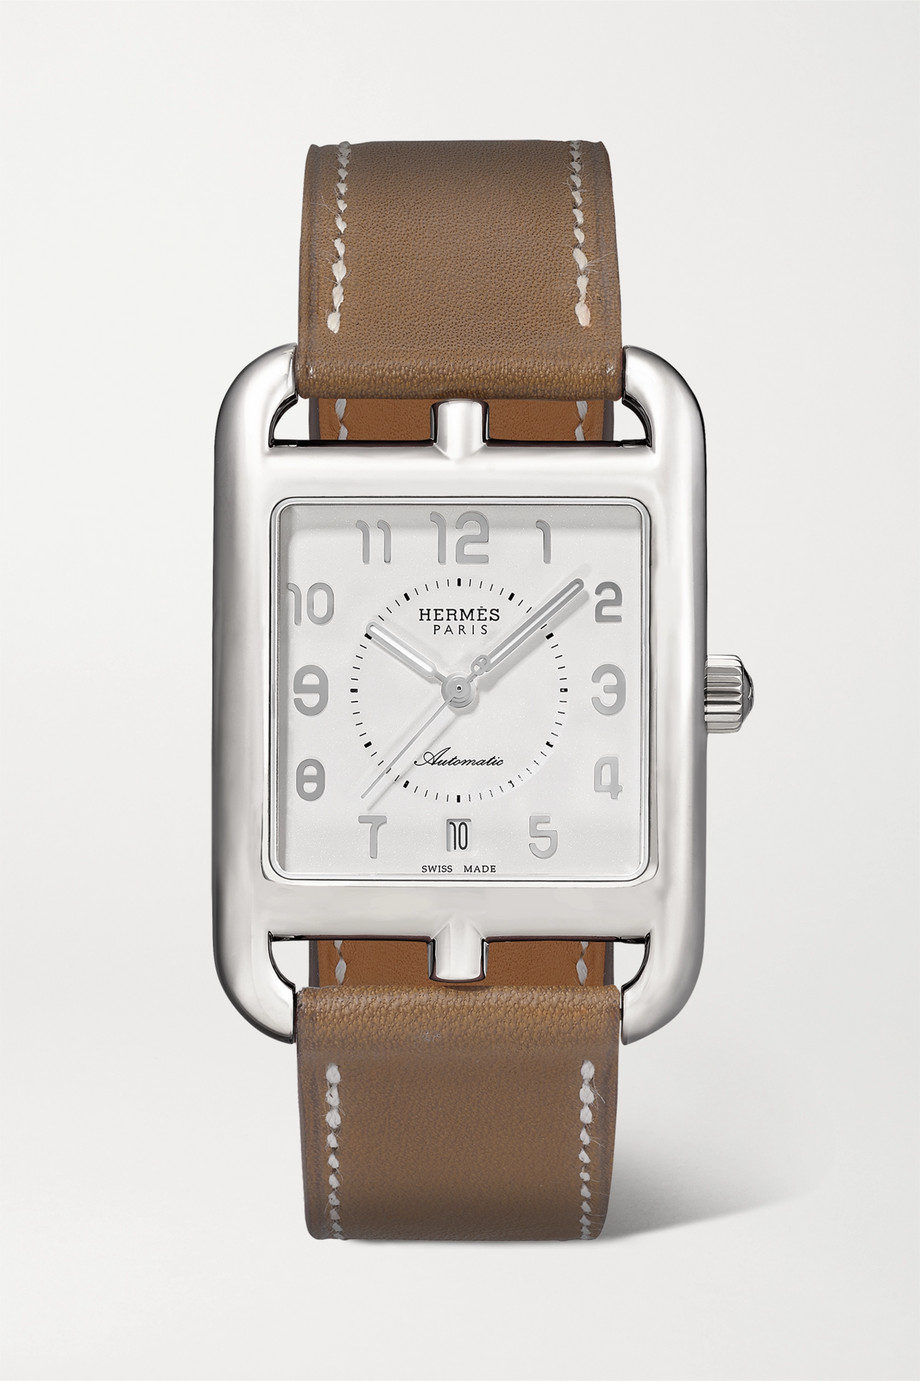 Hermès Timepieces Cape Cod Automatic 29mm large stainless steel and leather watch